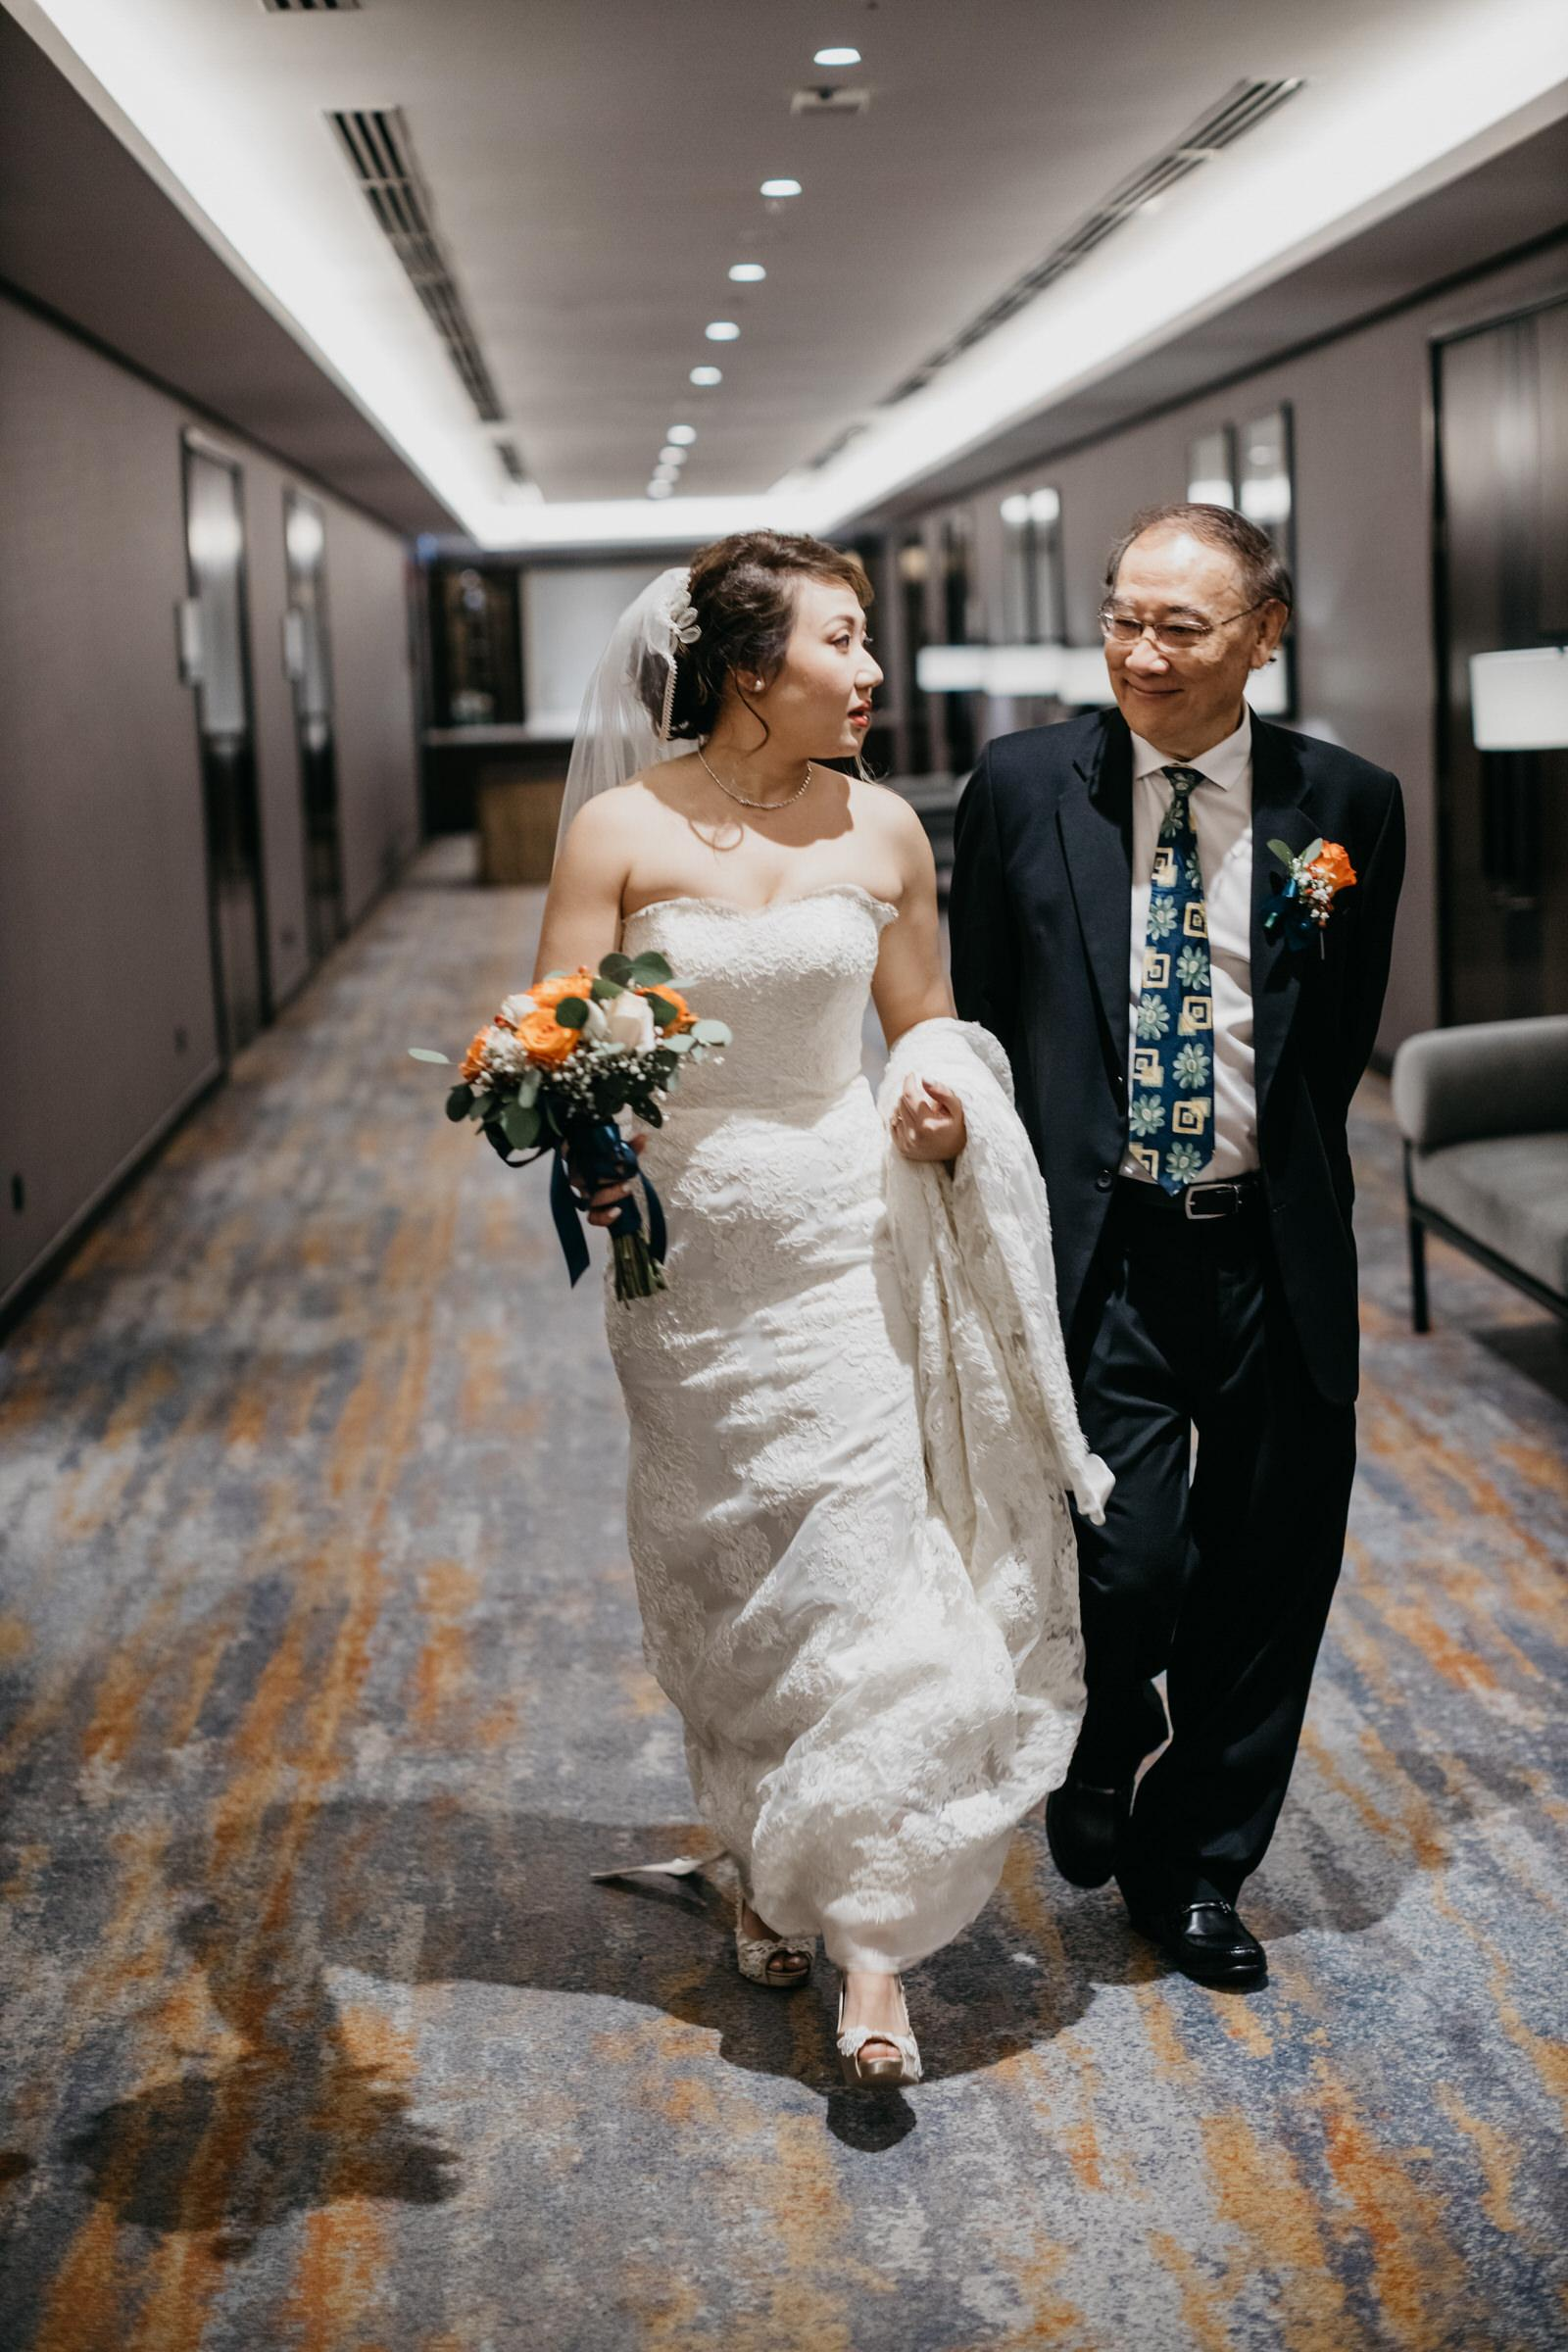 Father & Daugther A Rooftop Poolside Wedding at Hotel Stripes Kuala Lumpur MCO2.0 Cliff Choong Photography Malaysia Covid19 ROM Bride Getting Ready